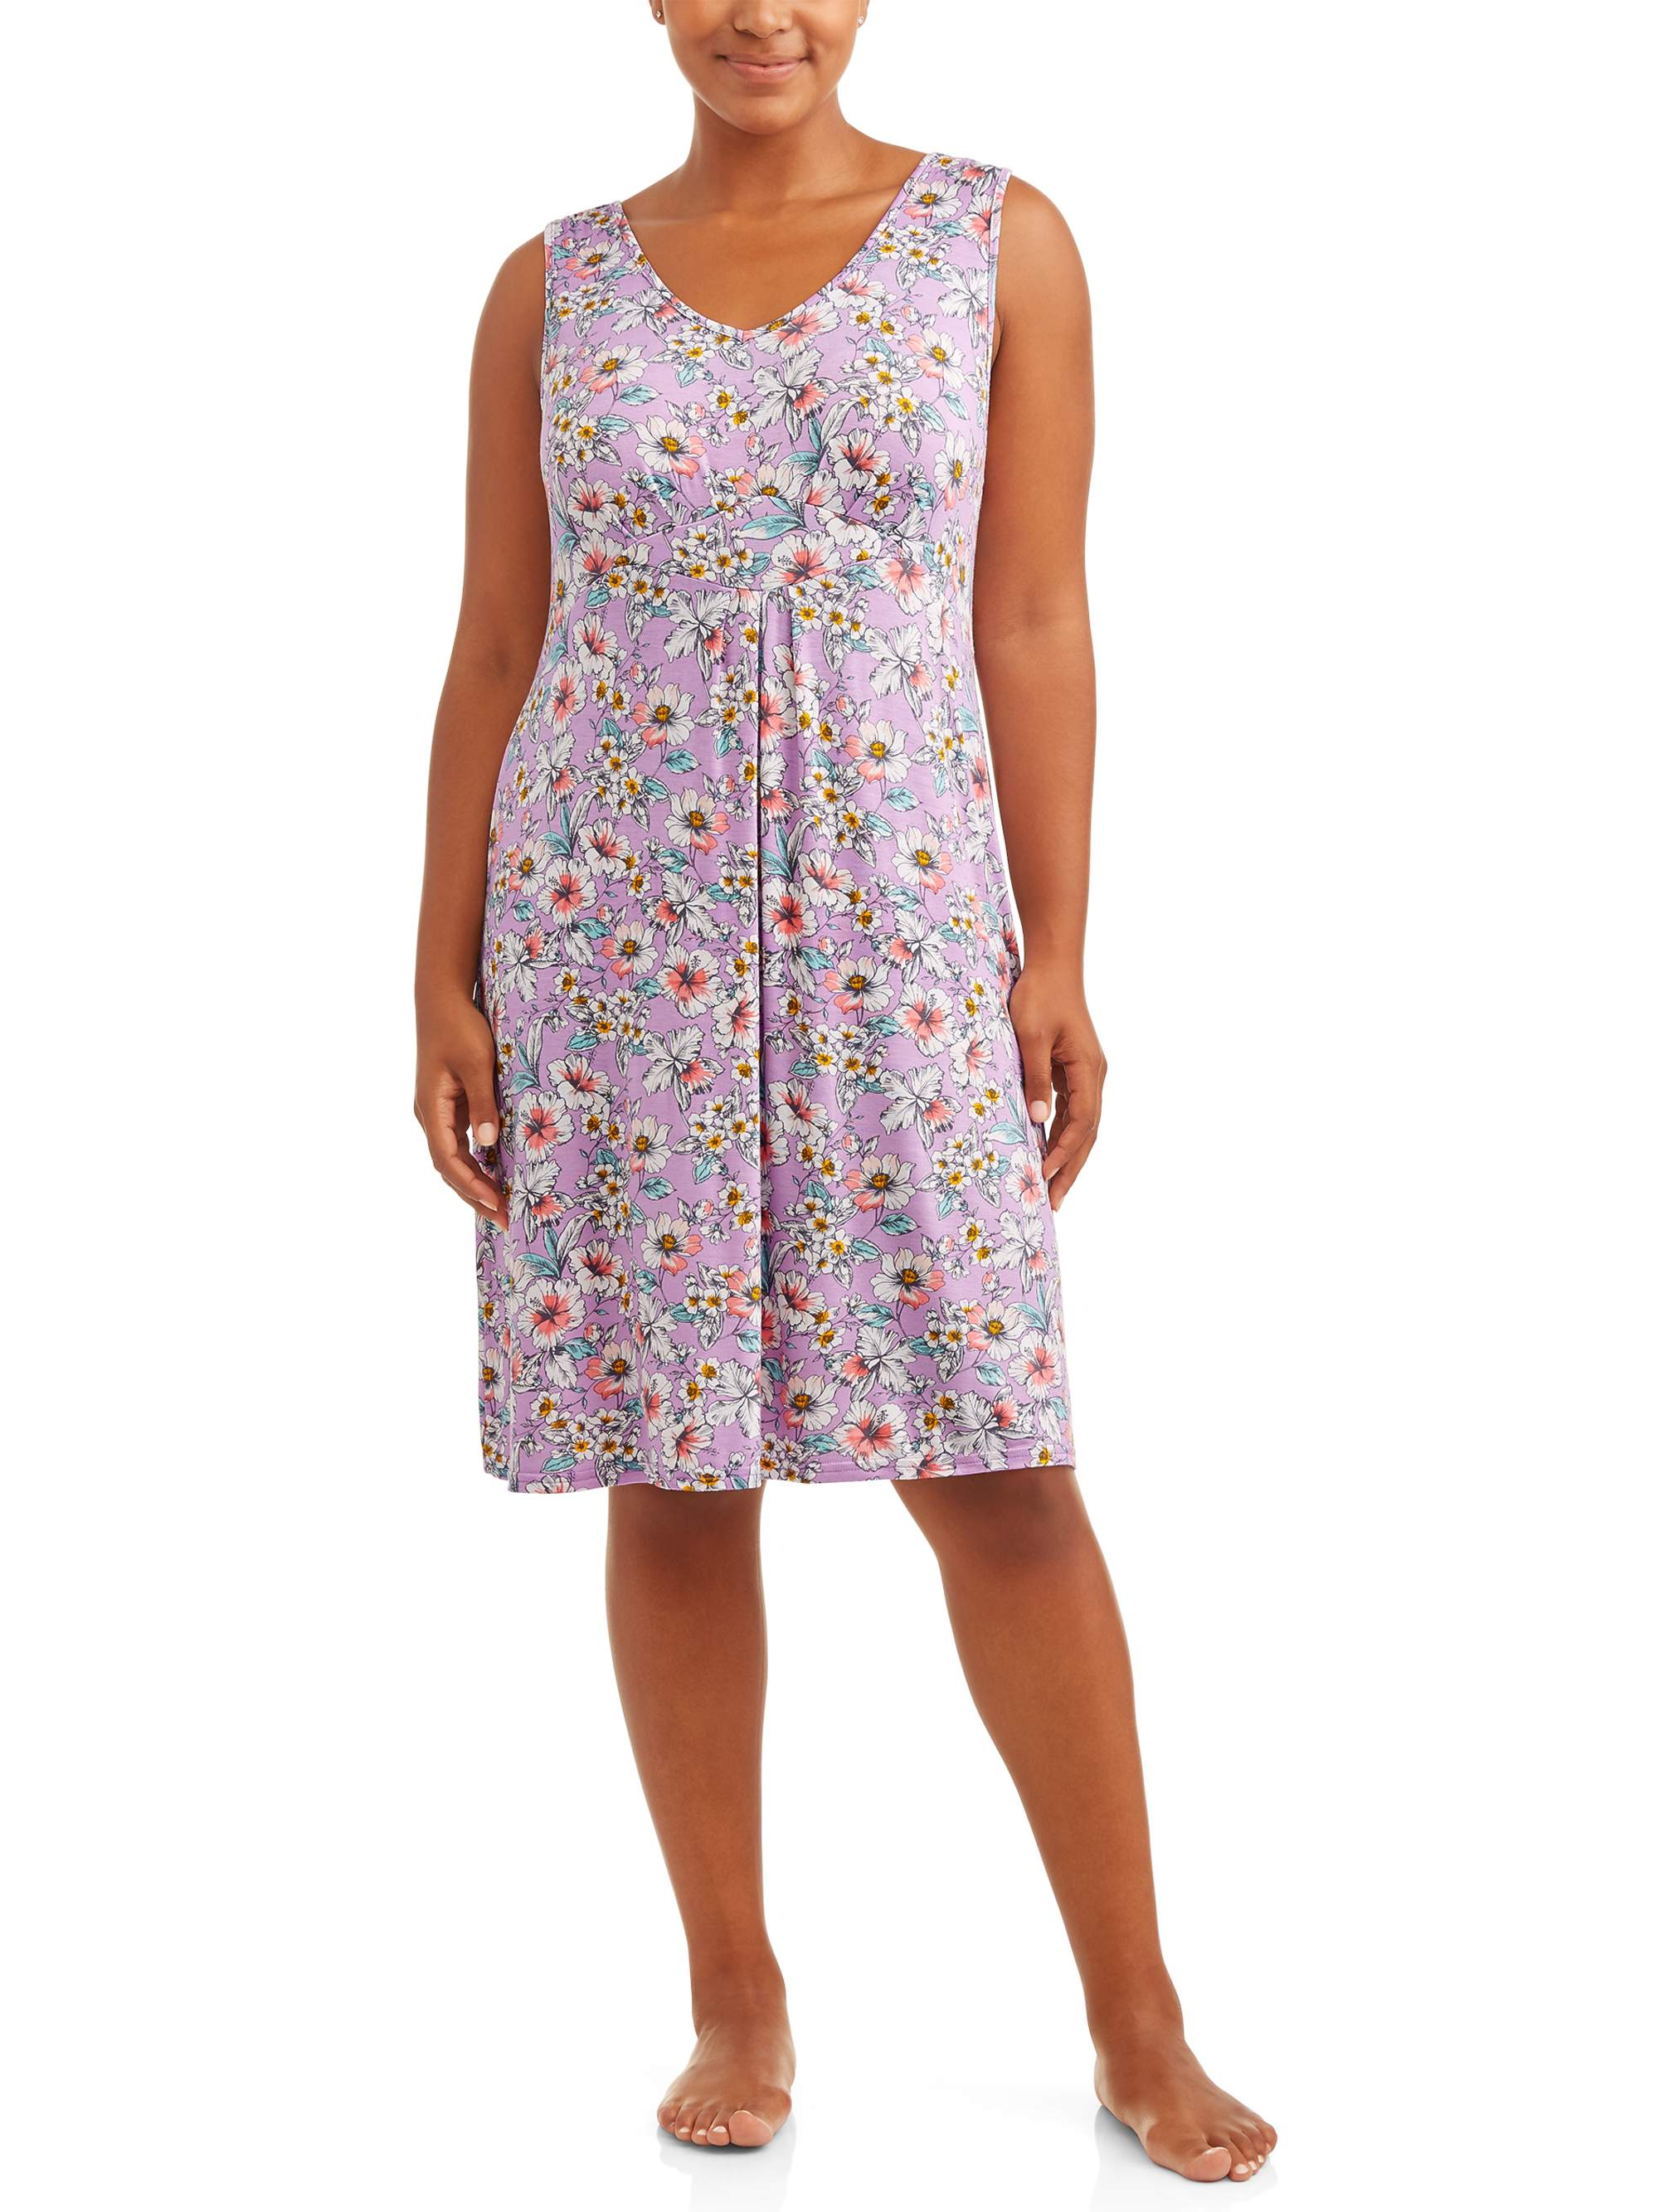 Women's and Women's Plus Print Nightgown